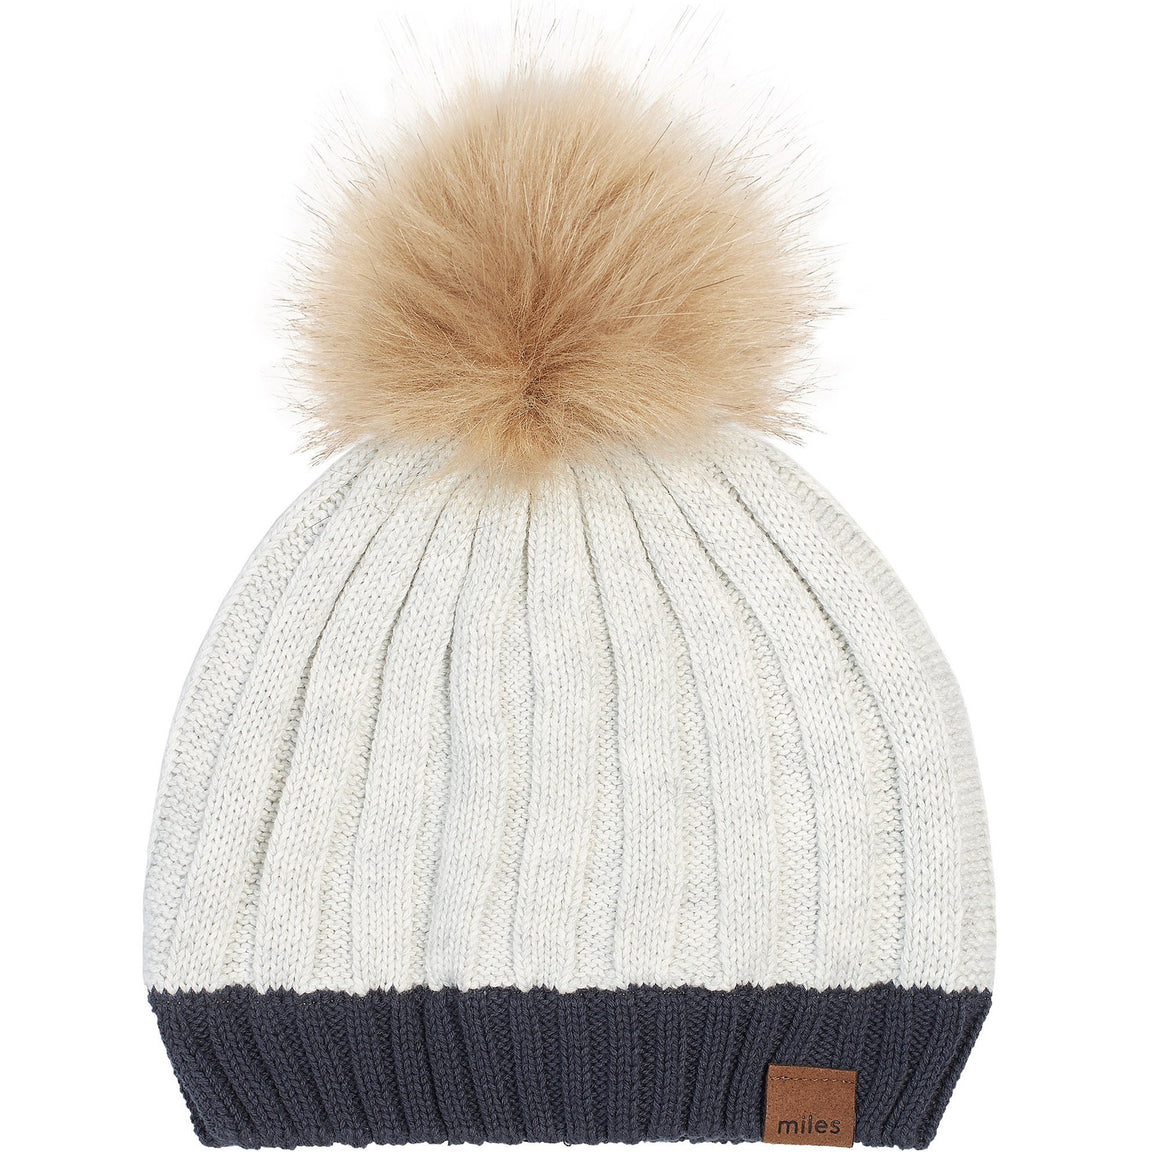 19FM45Y740 - MILES BABY Light Heather Grey Knit Pom Pom Hat Winter Hat Miles Baby